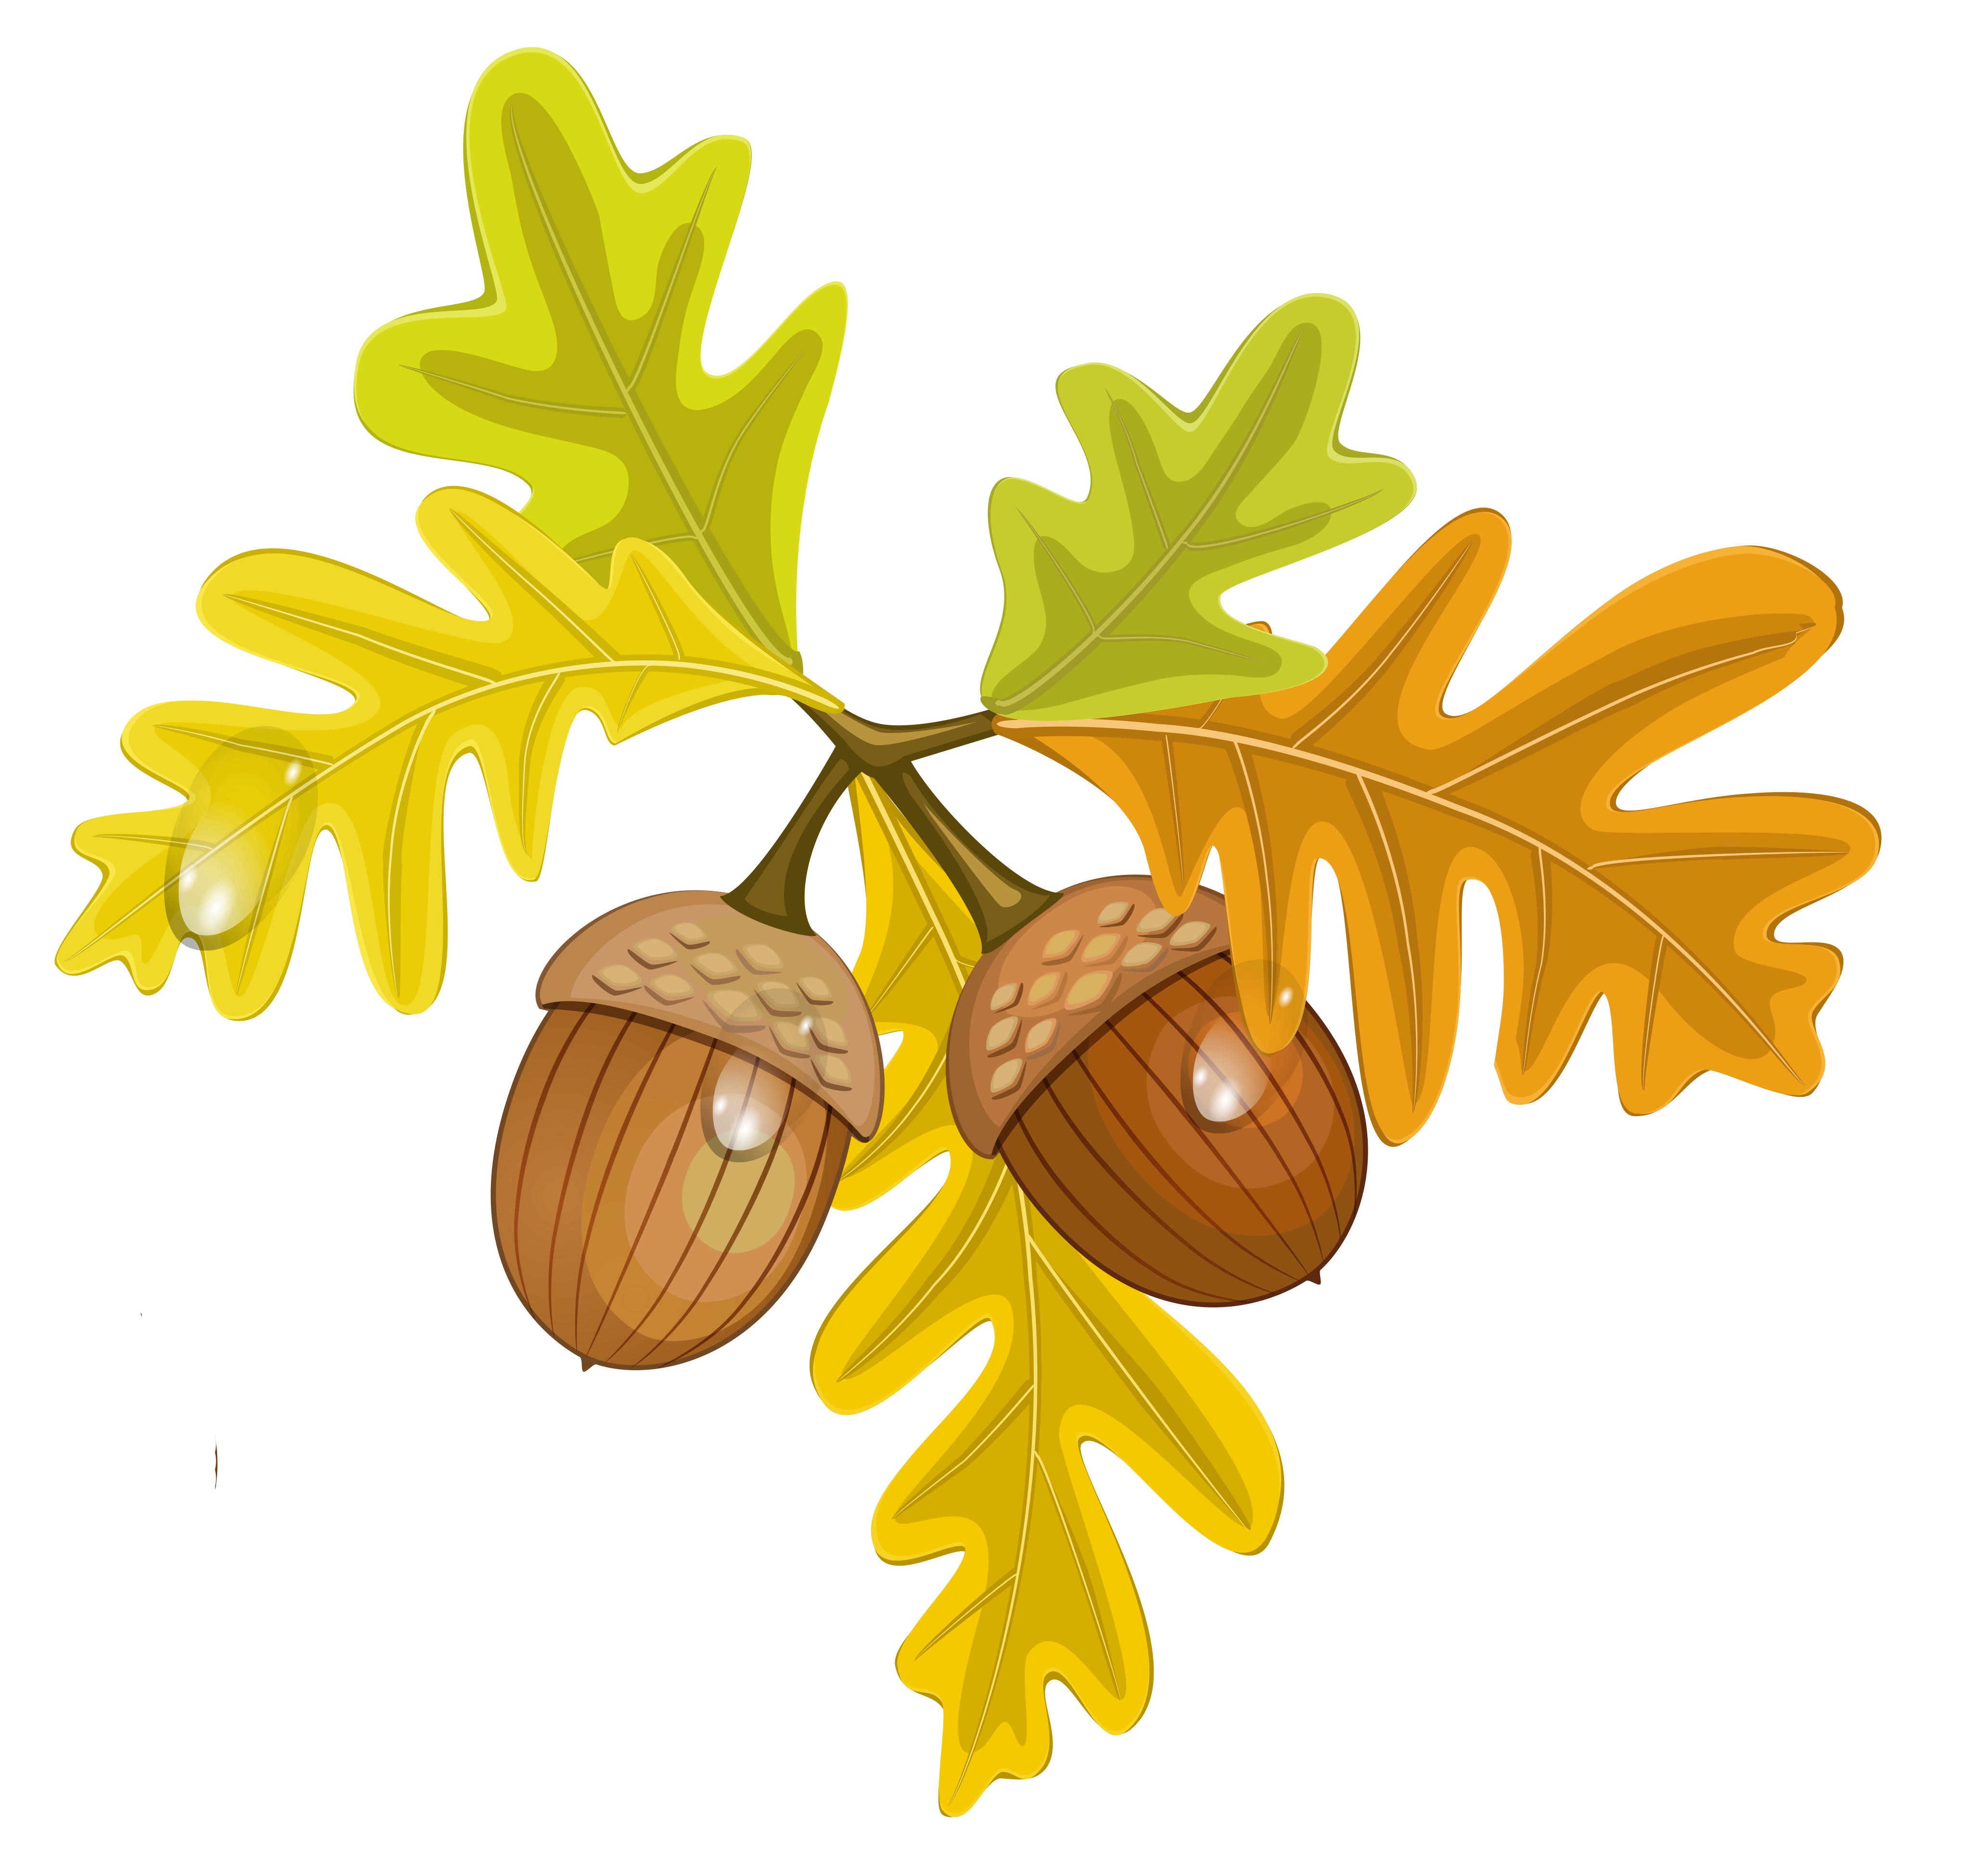 Acorn garland clipart image free Pin by Cathi Rogers on Wurstfest ideas | Autumn leaves, Fall crafts ... image free